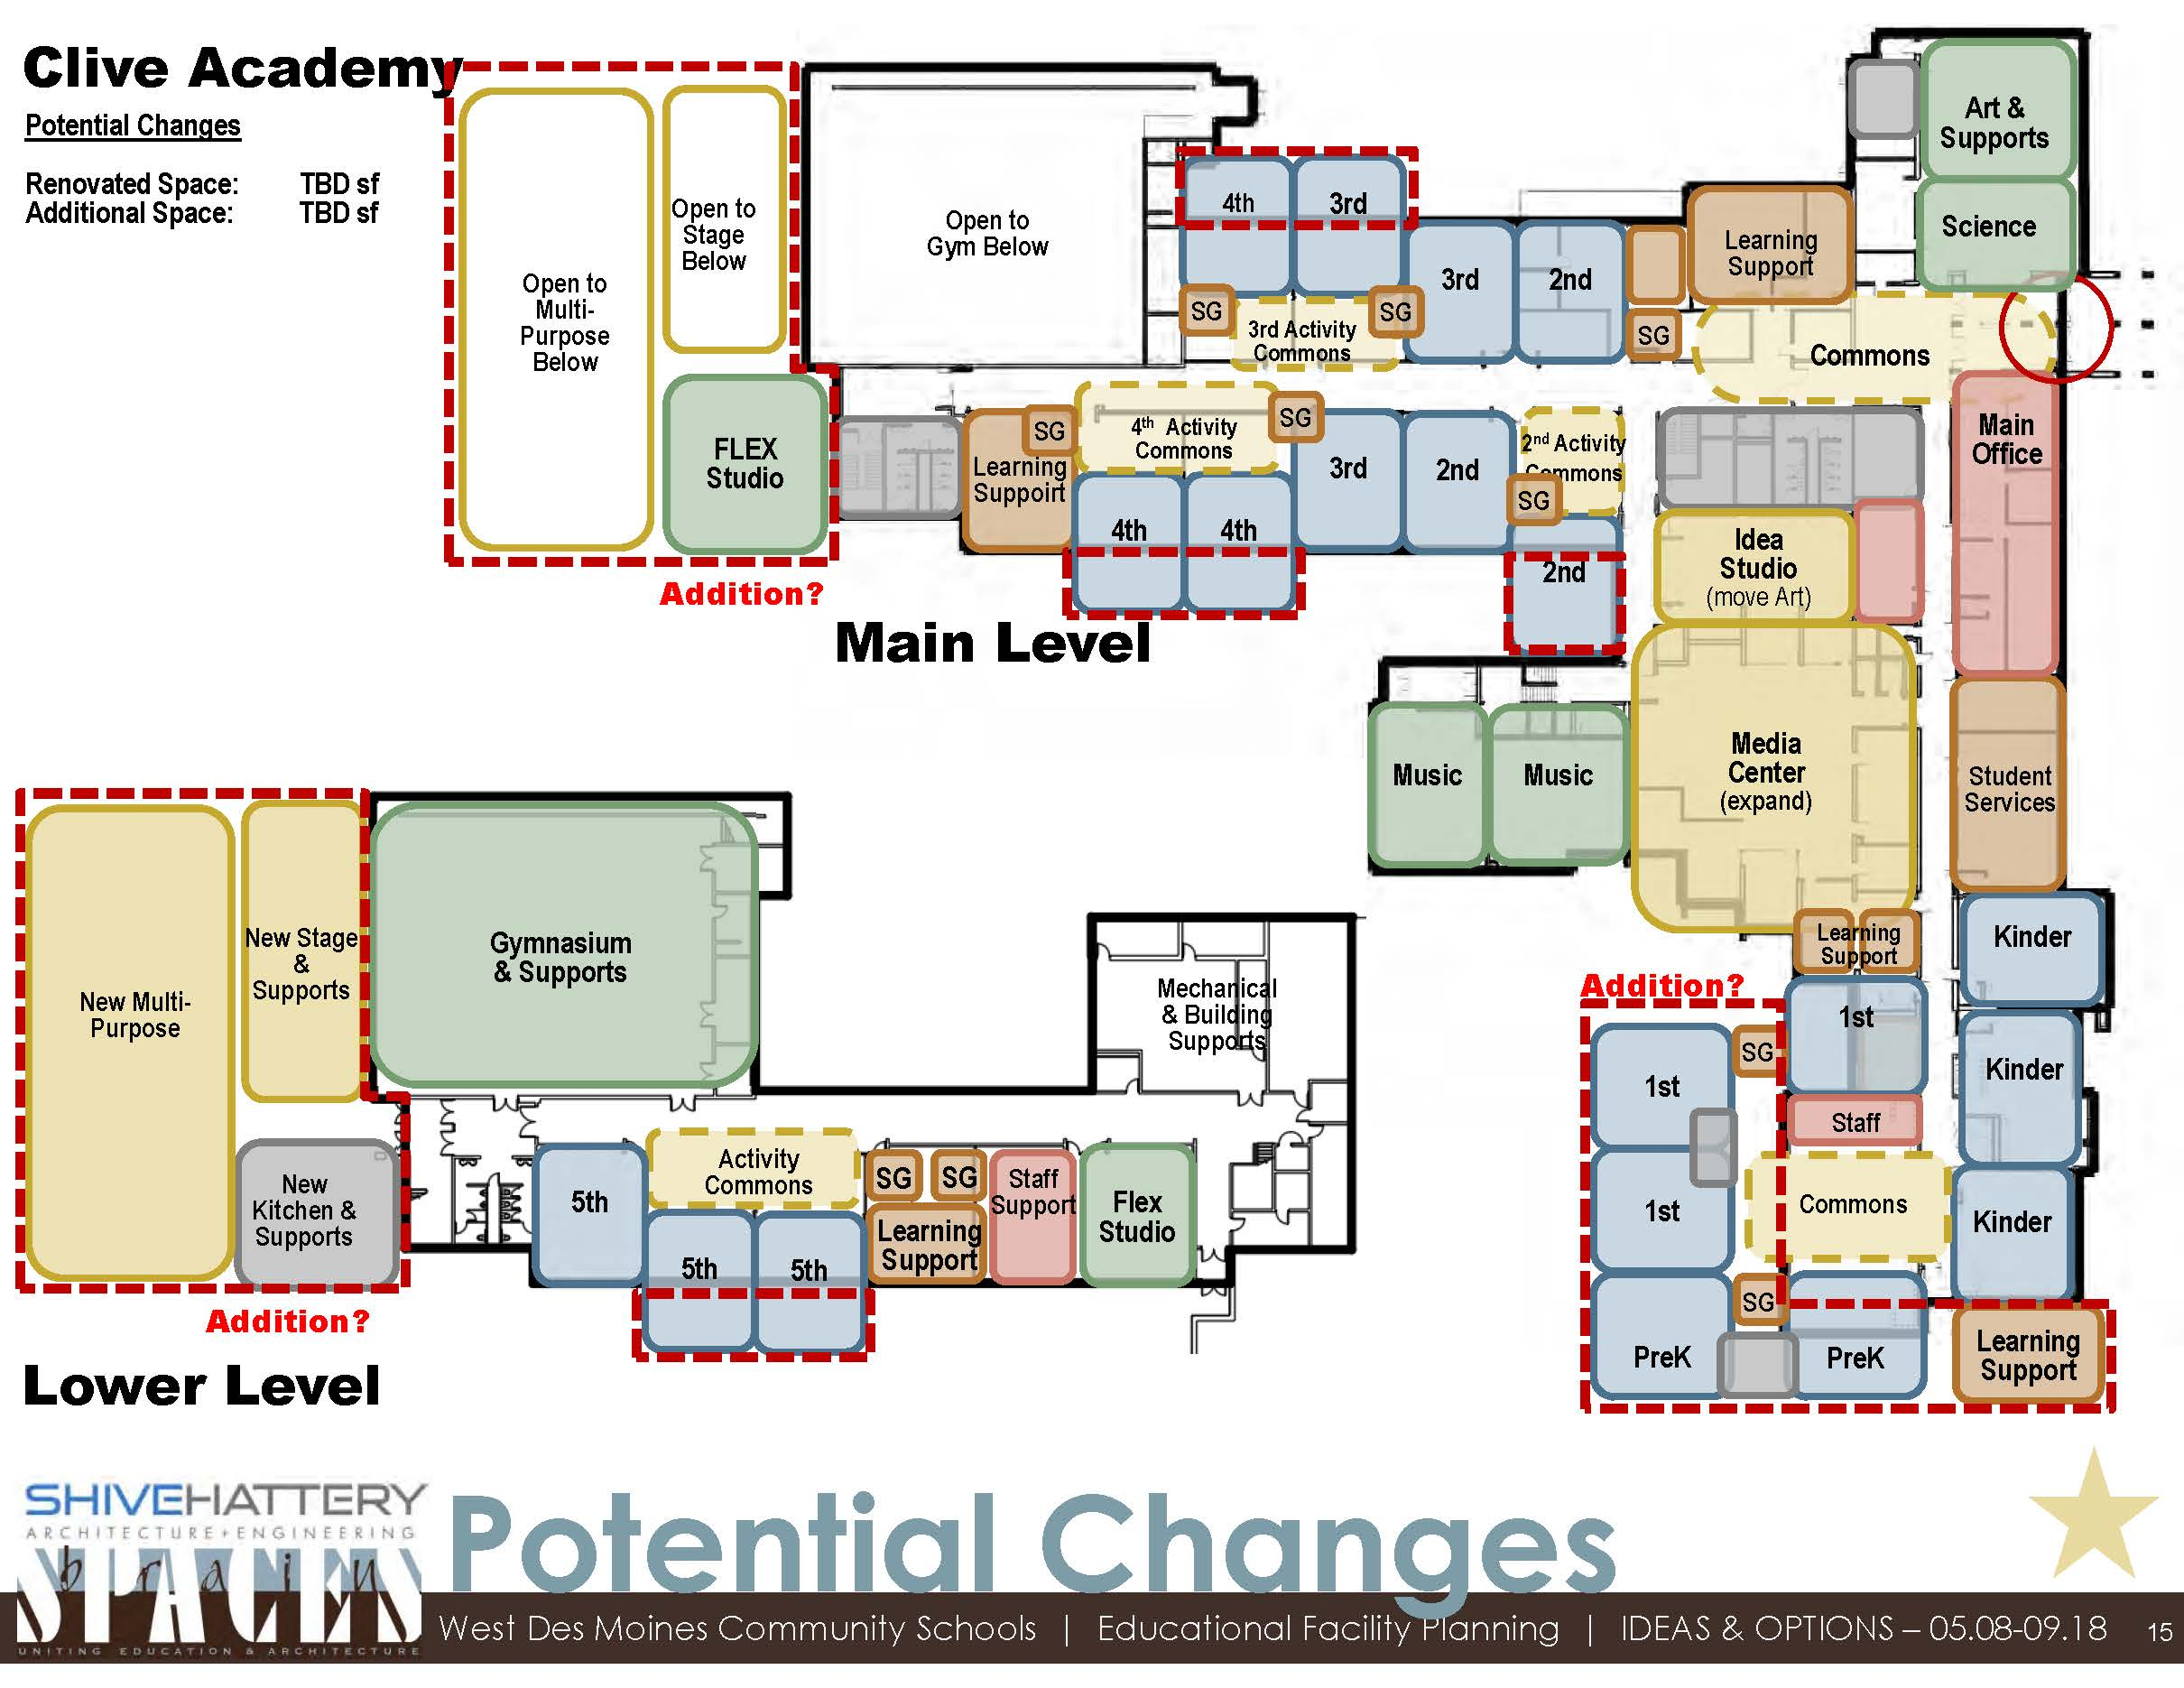 POTENTIAL CHANGES  This graphic outlines options for reconfiguring current space and creating additions to the building to accommodate current and future needs.   Click on the graphic to view full image.